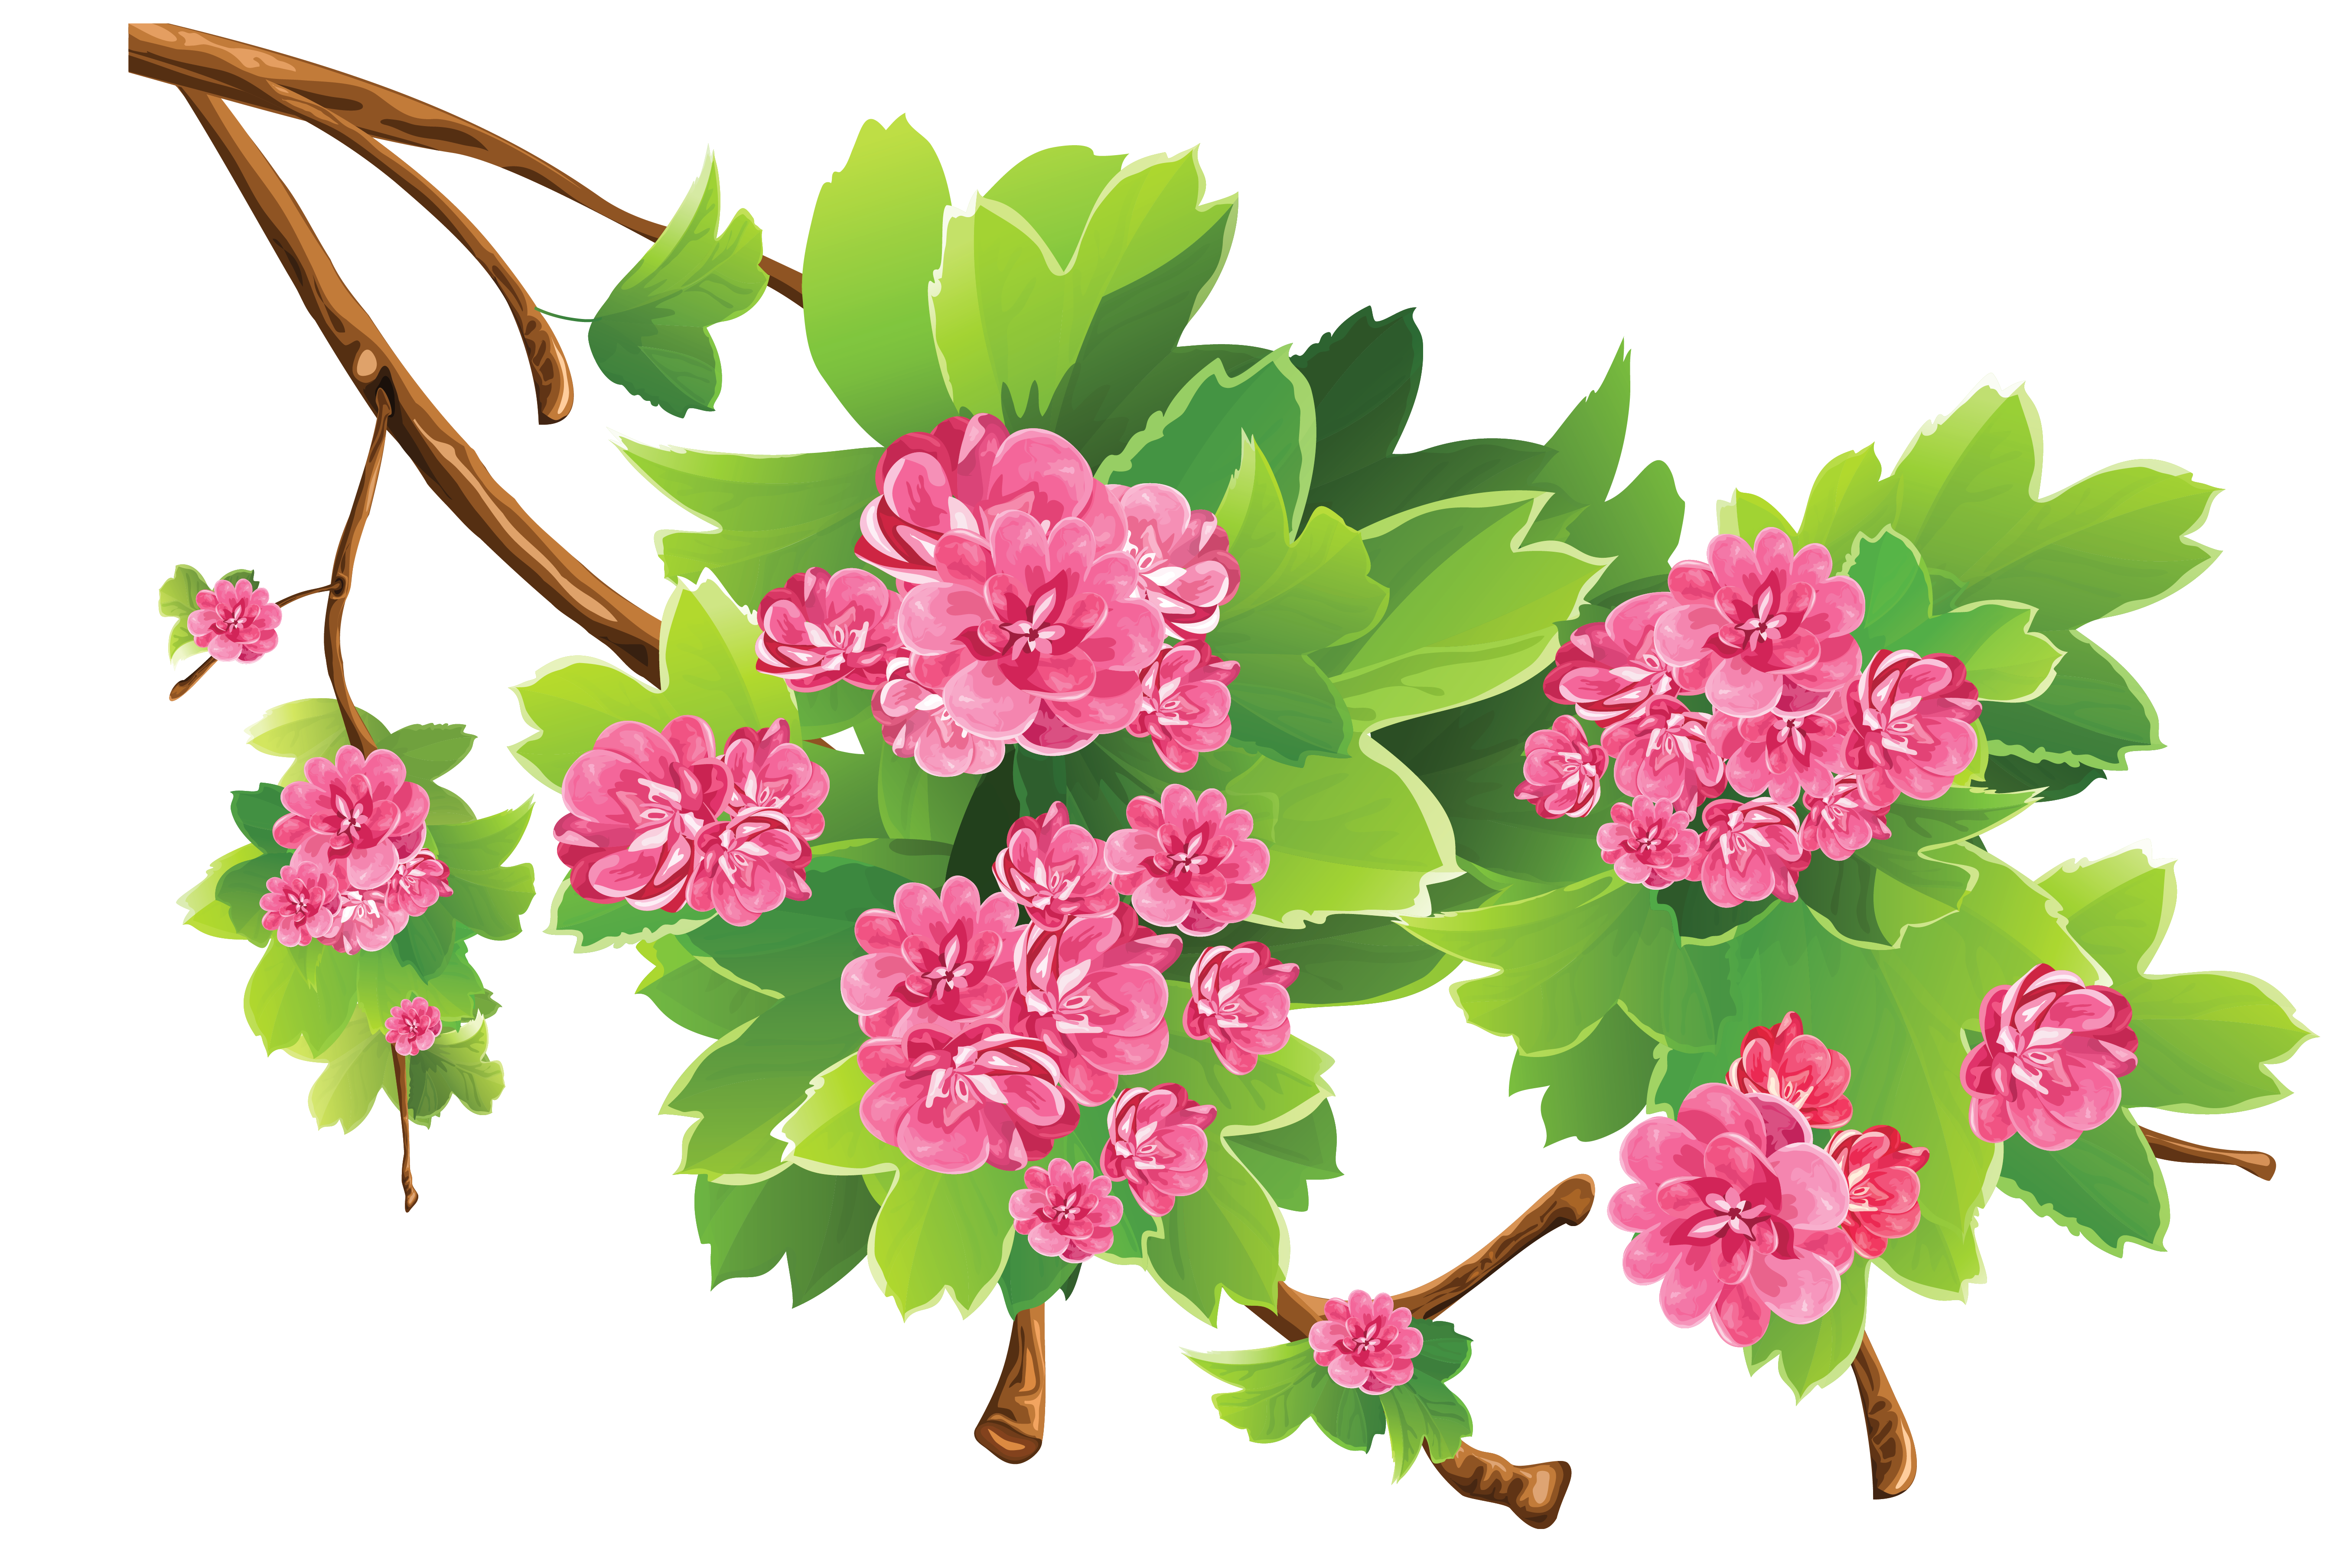 PNG Images, Download 1740000+ PNG Resources with